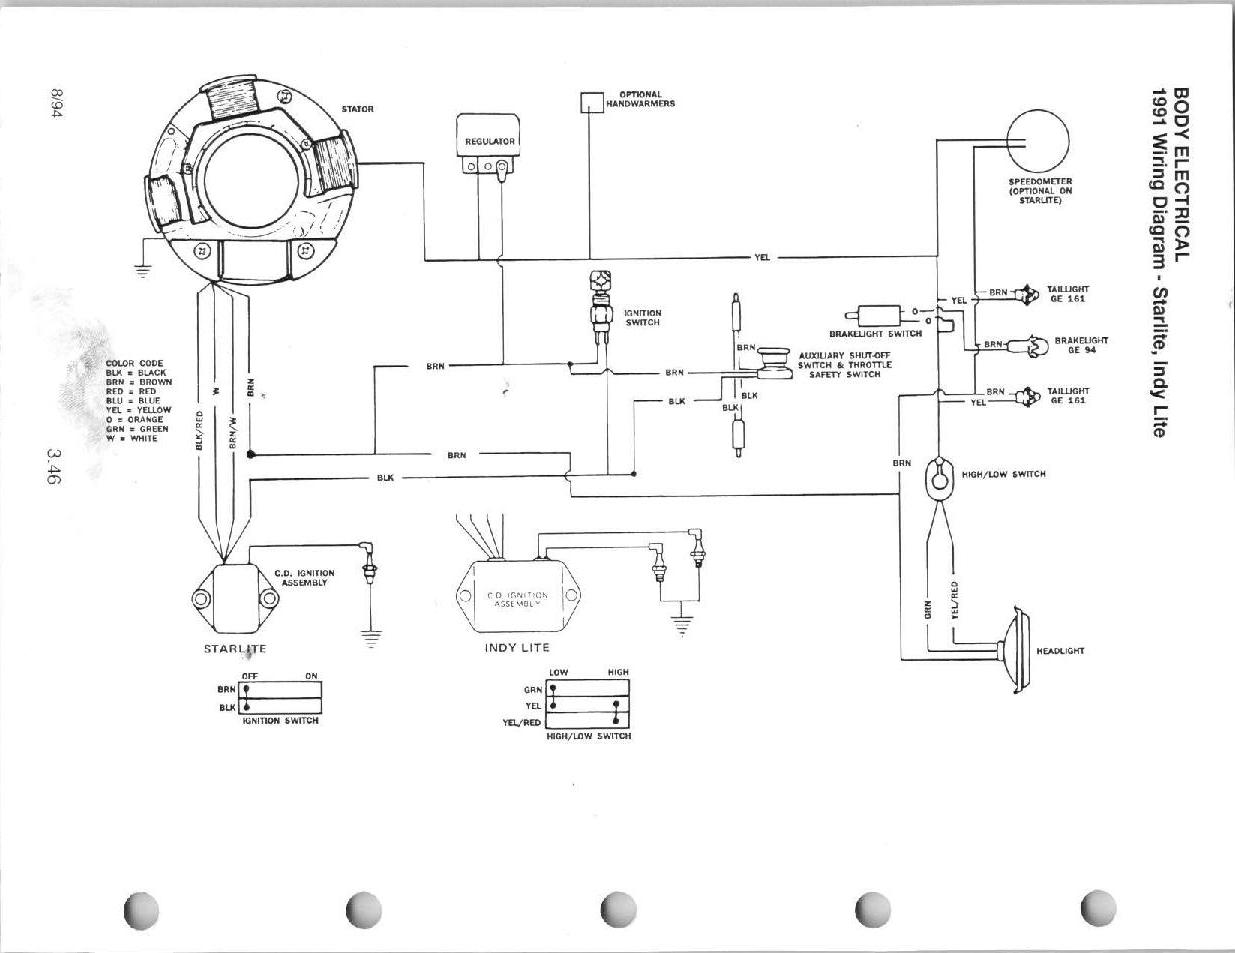 Polaris 500 Ho Wiring Diagram. Parts. Wiring Diagram Images